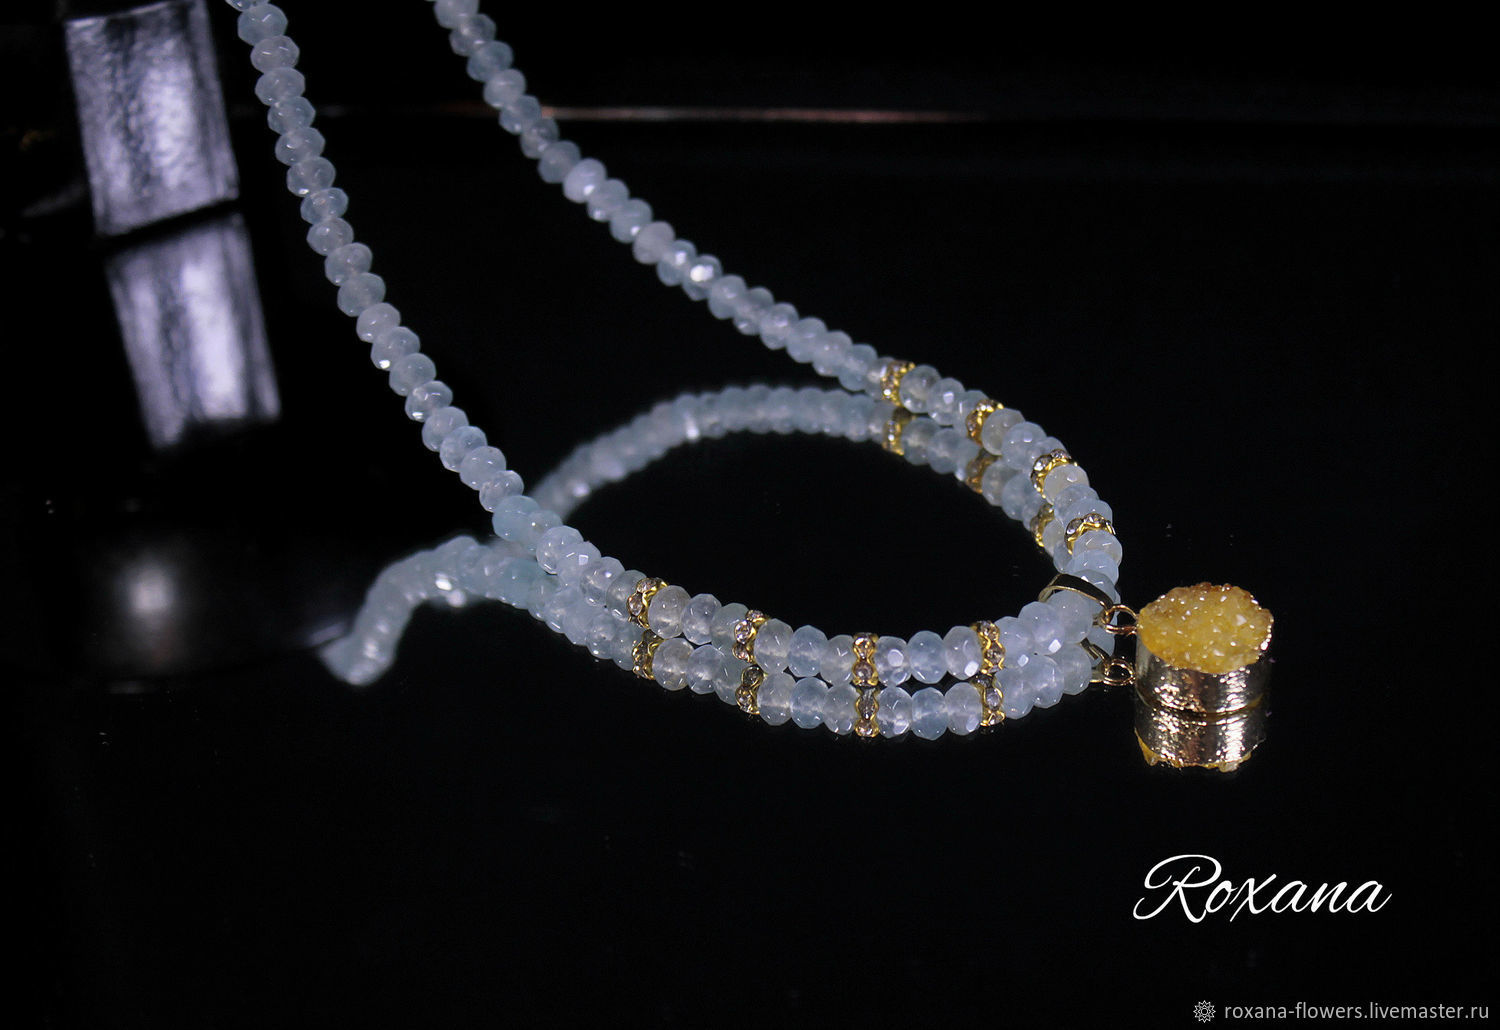 Sunny Beach A Necklace With Pendant Druse Quartz And